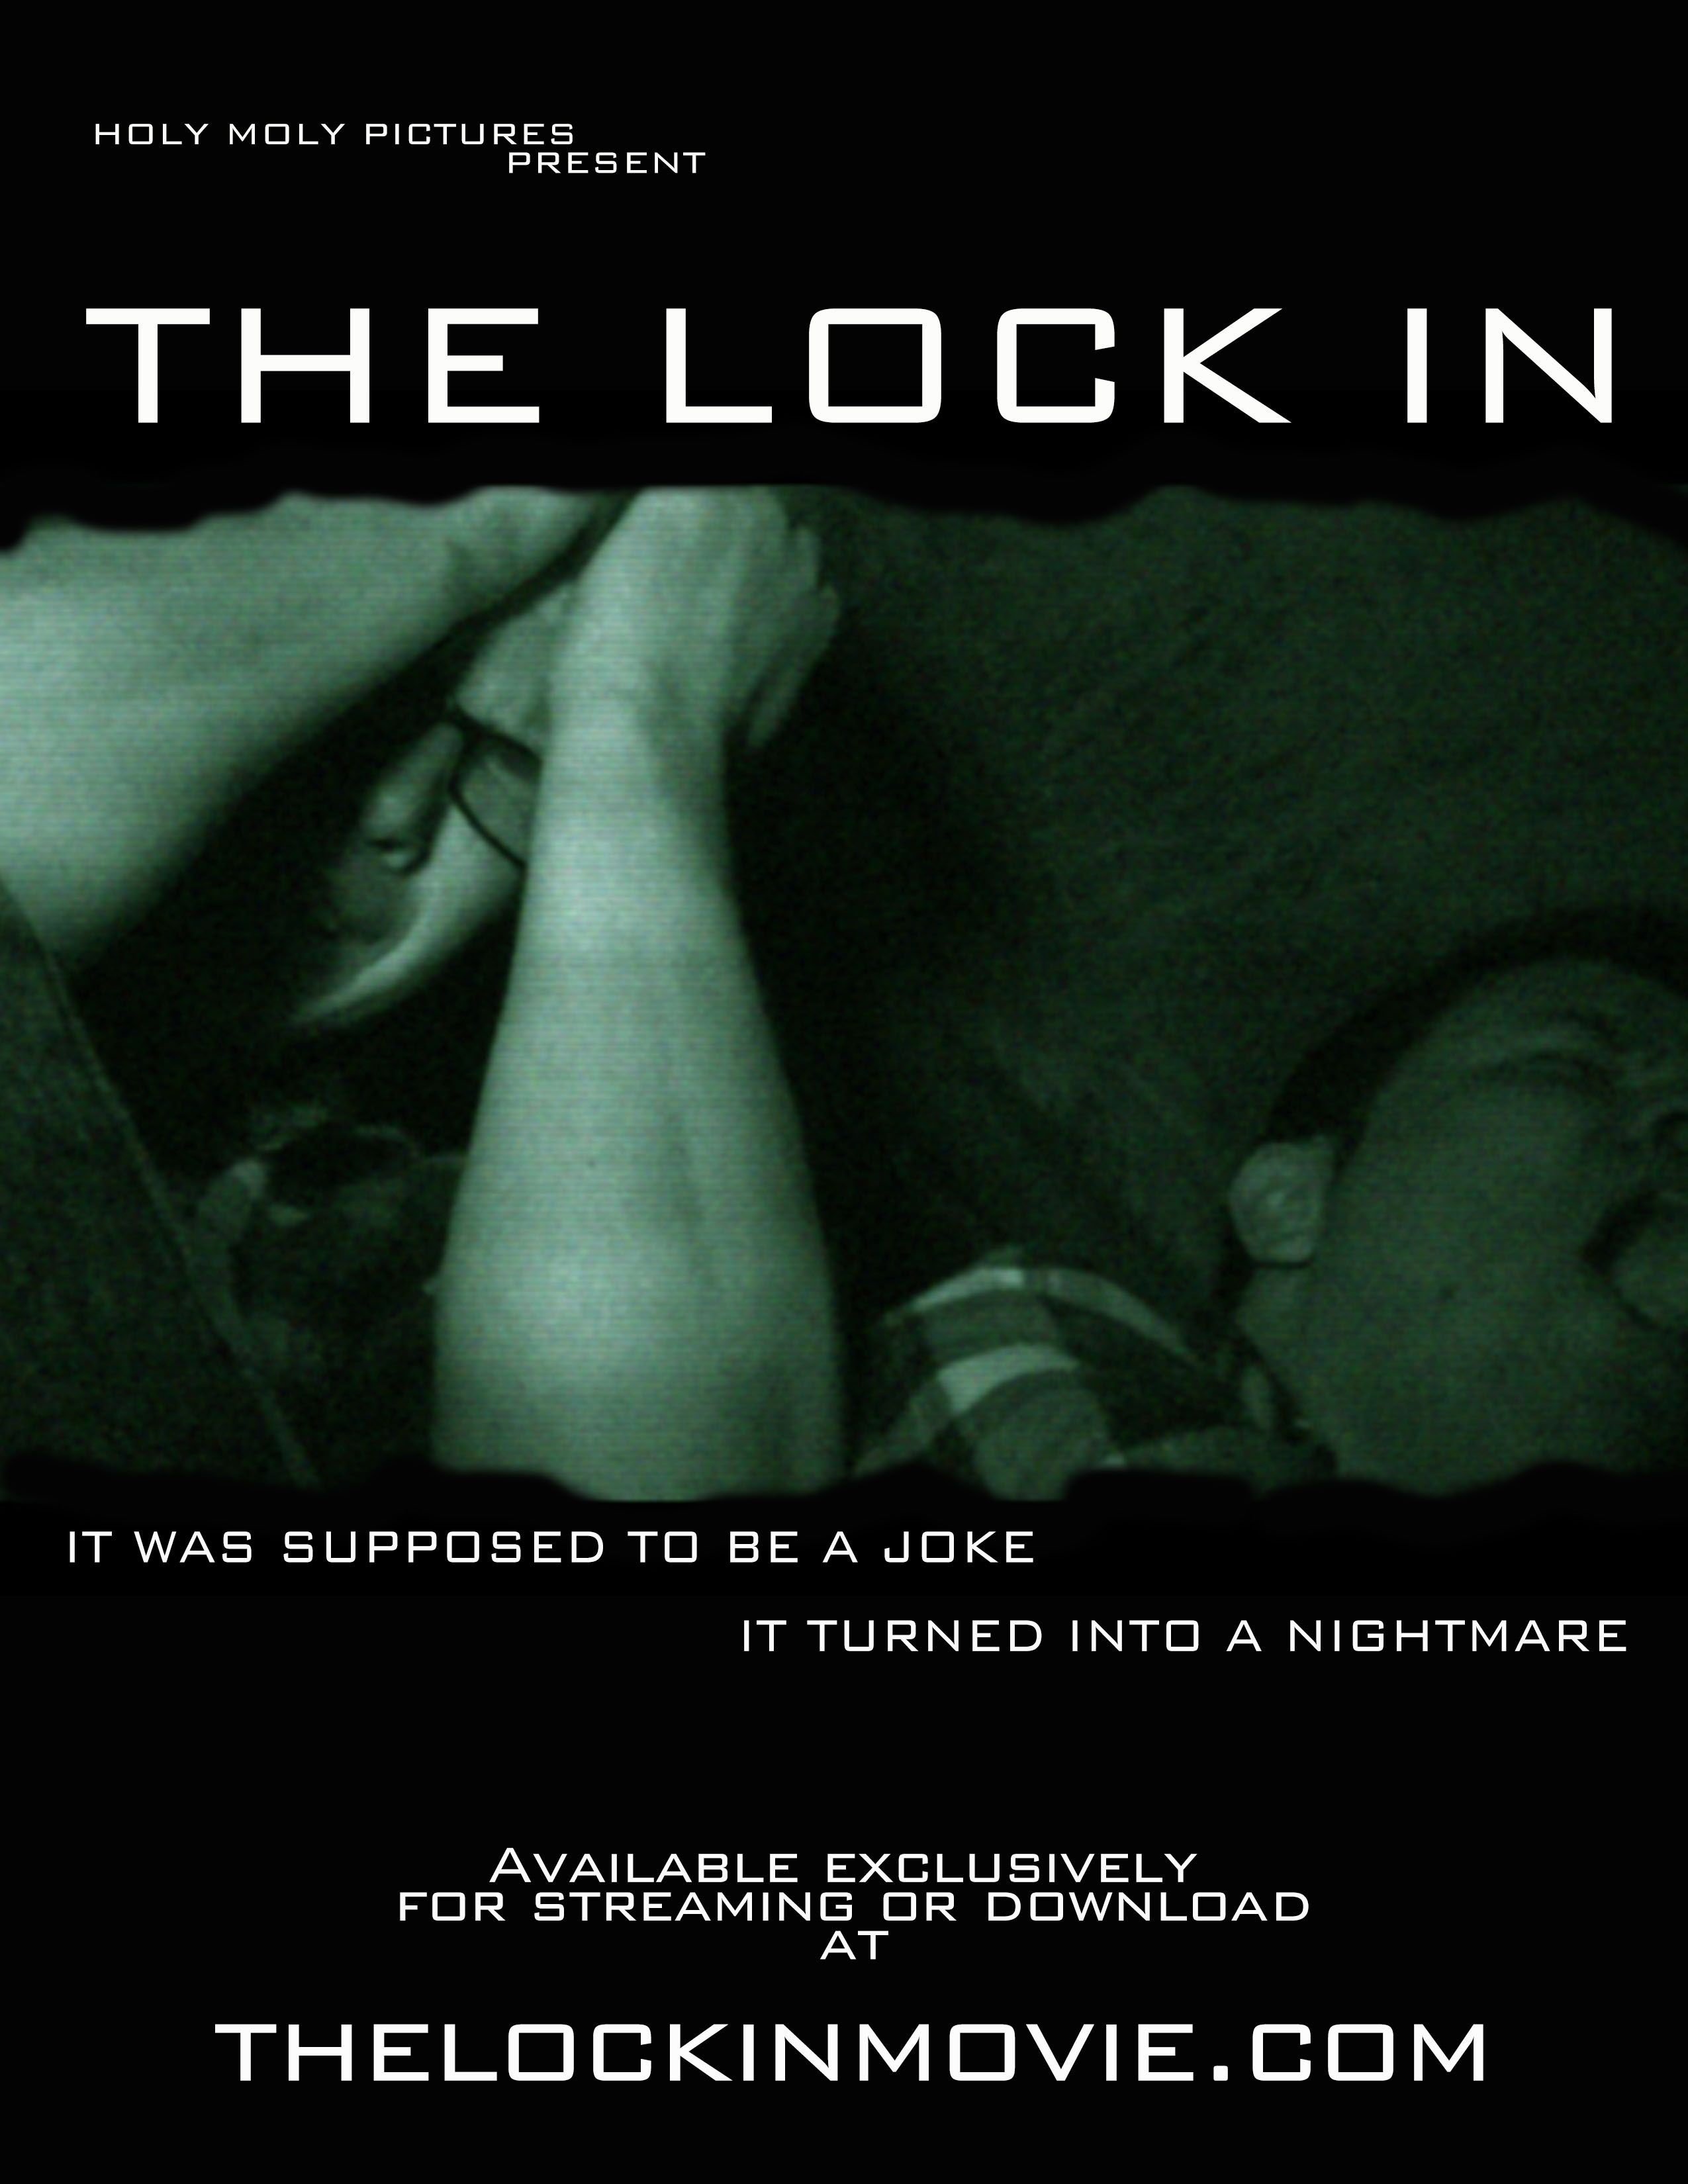 the lock in Film Is Risen: A Discussion of Religion in the Movies